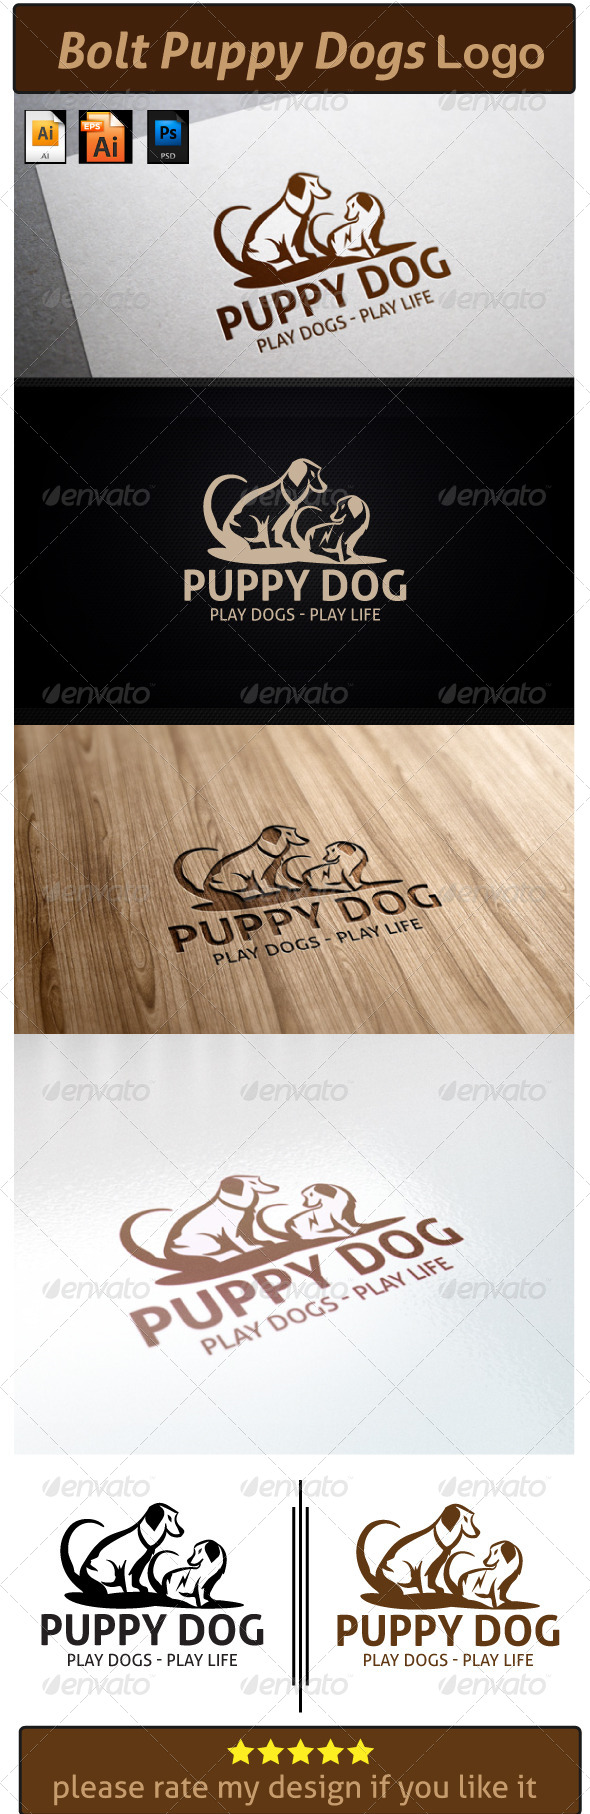 Bolt Puppy Dogs Logo